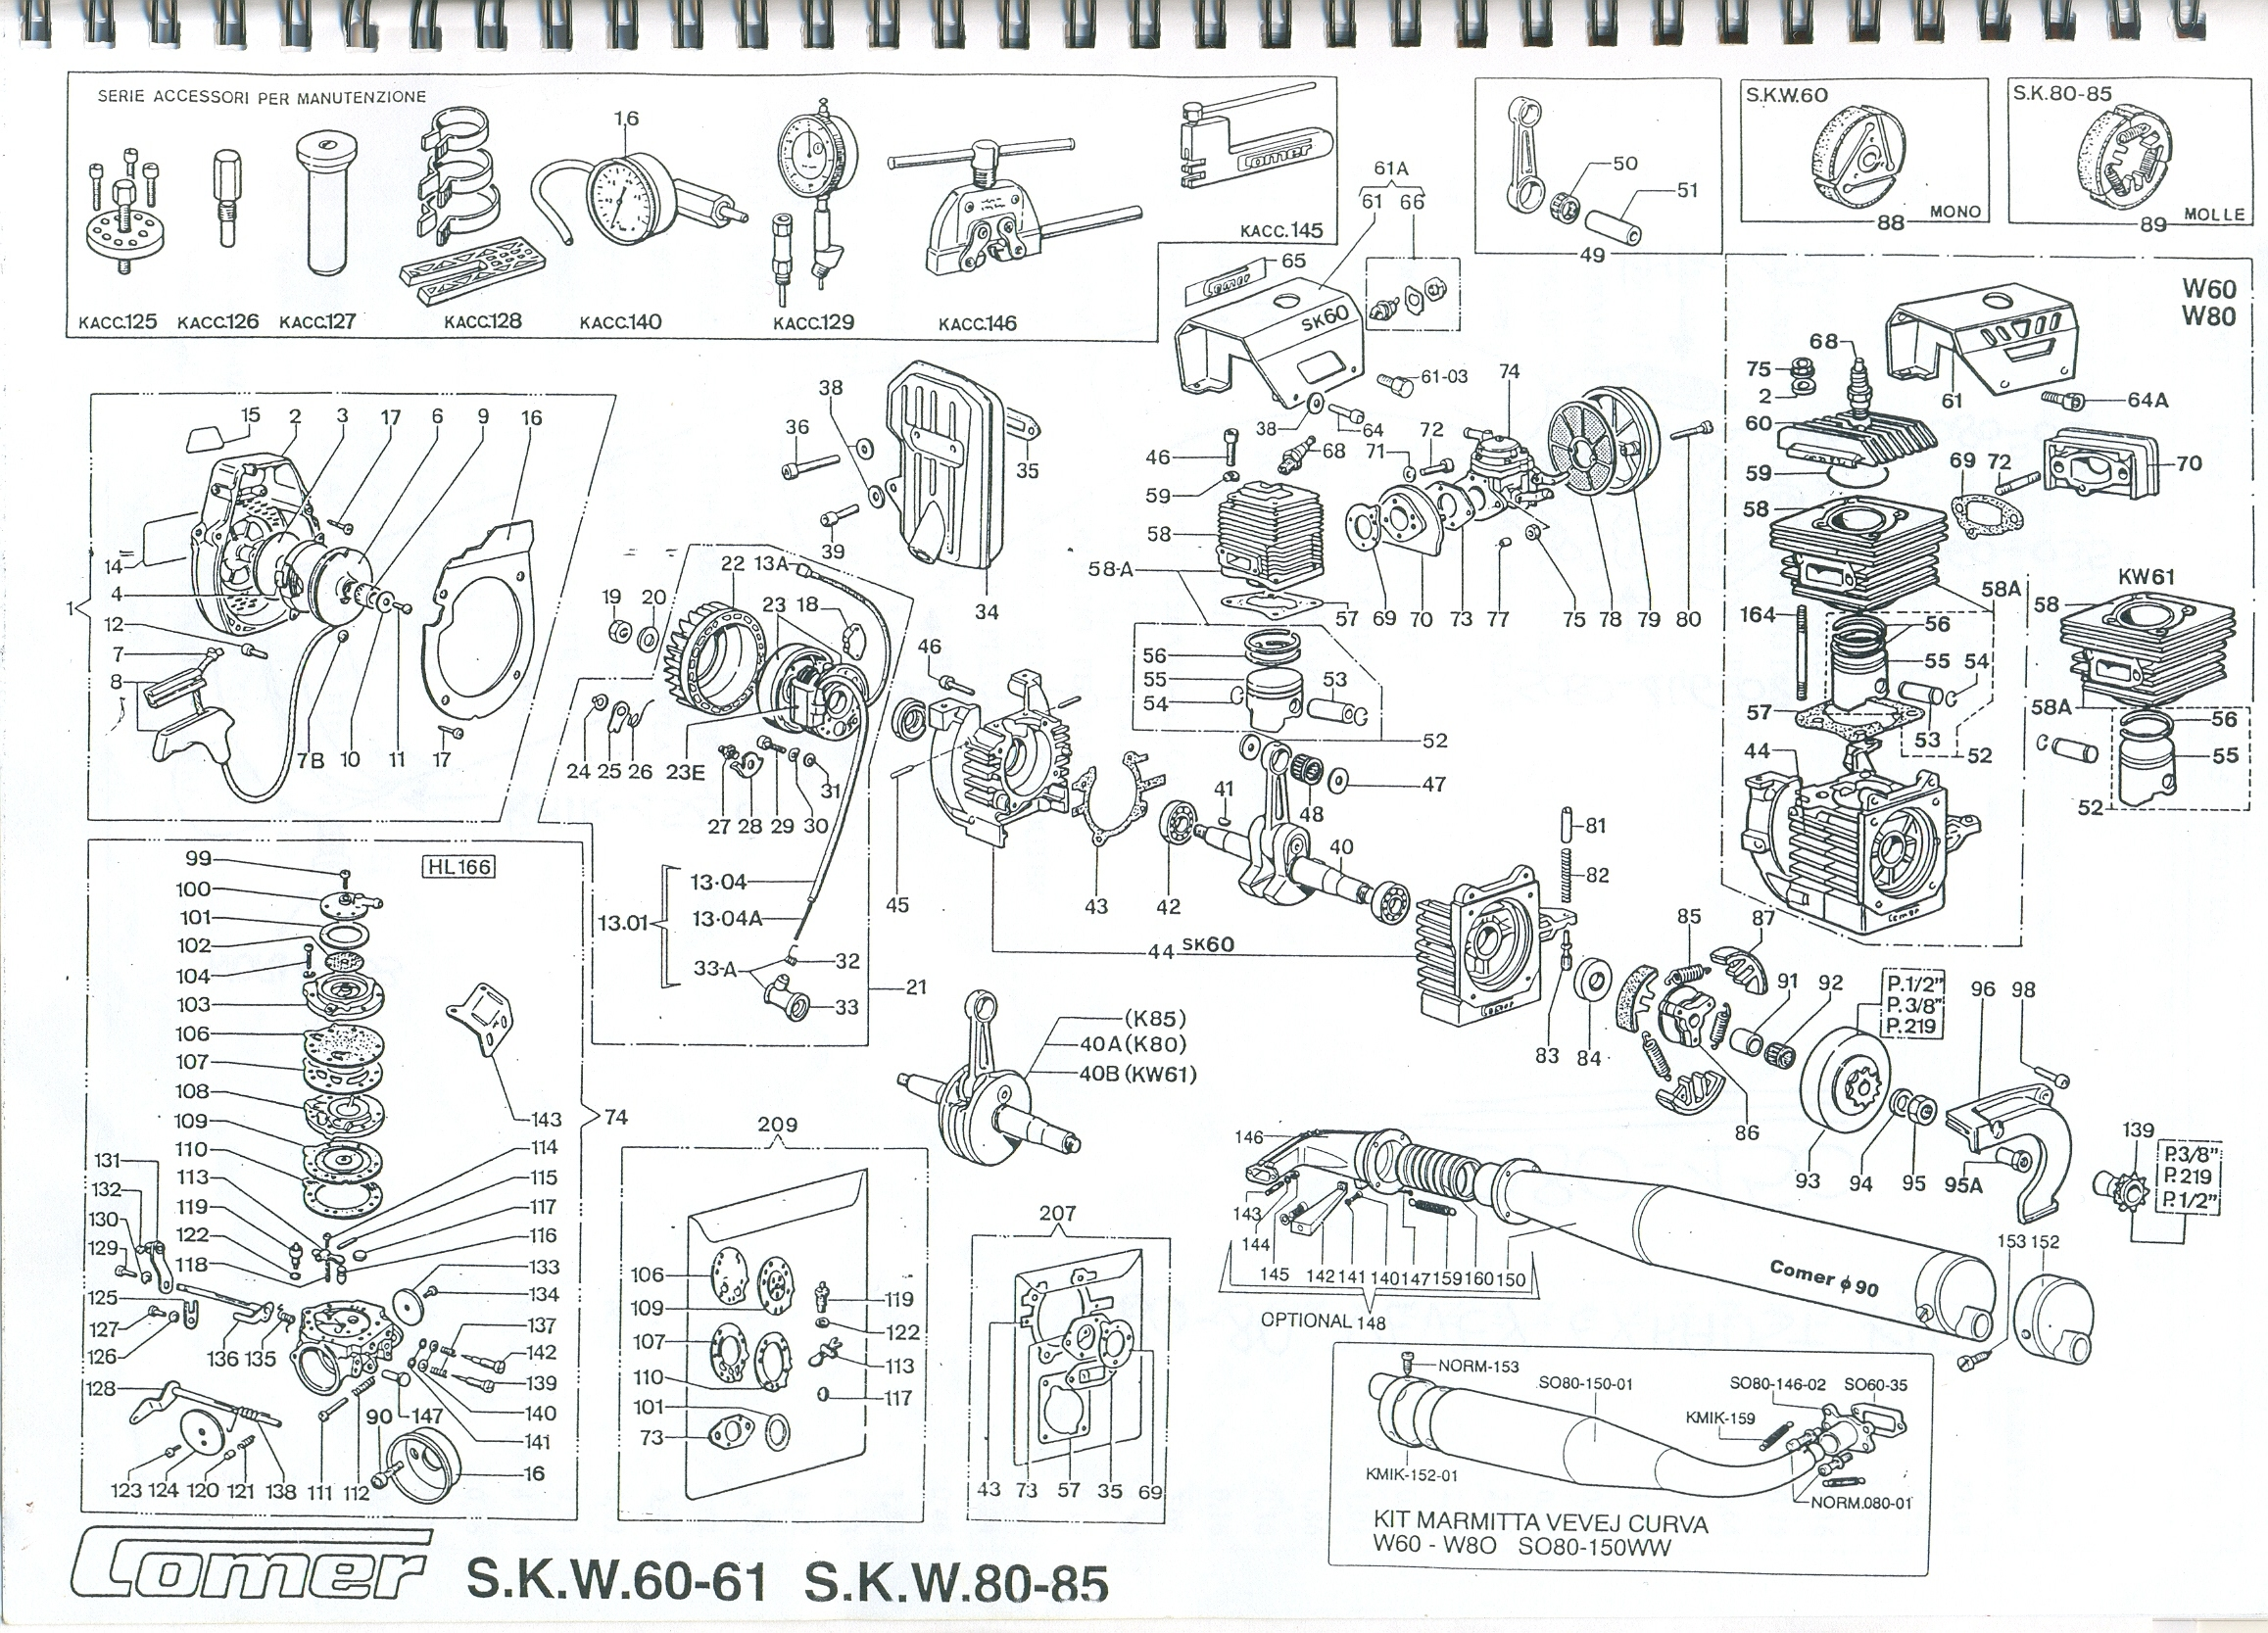 80cc Wiring Diagram Great Design Of Moto 4 Bicycle Engine Motorized Residential Electrical Diagrams Bike Motor